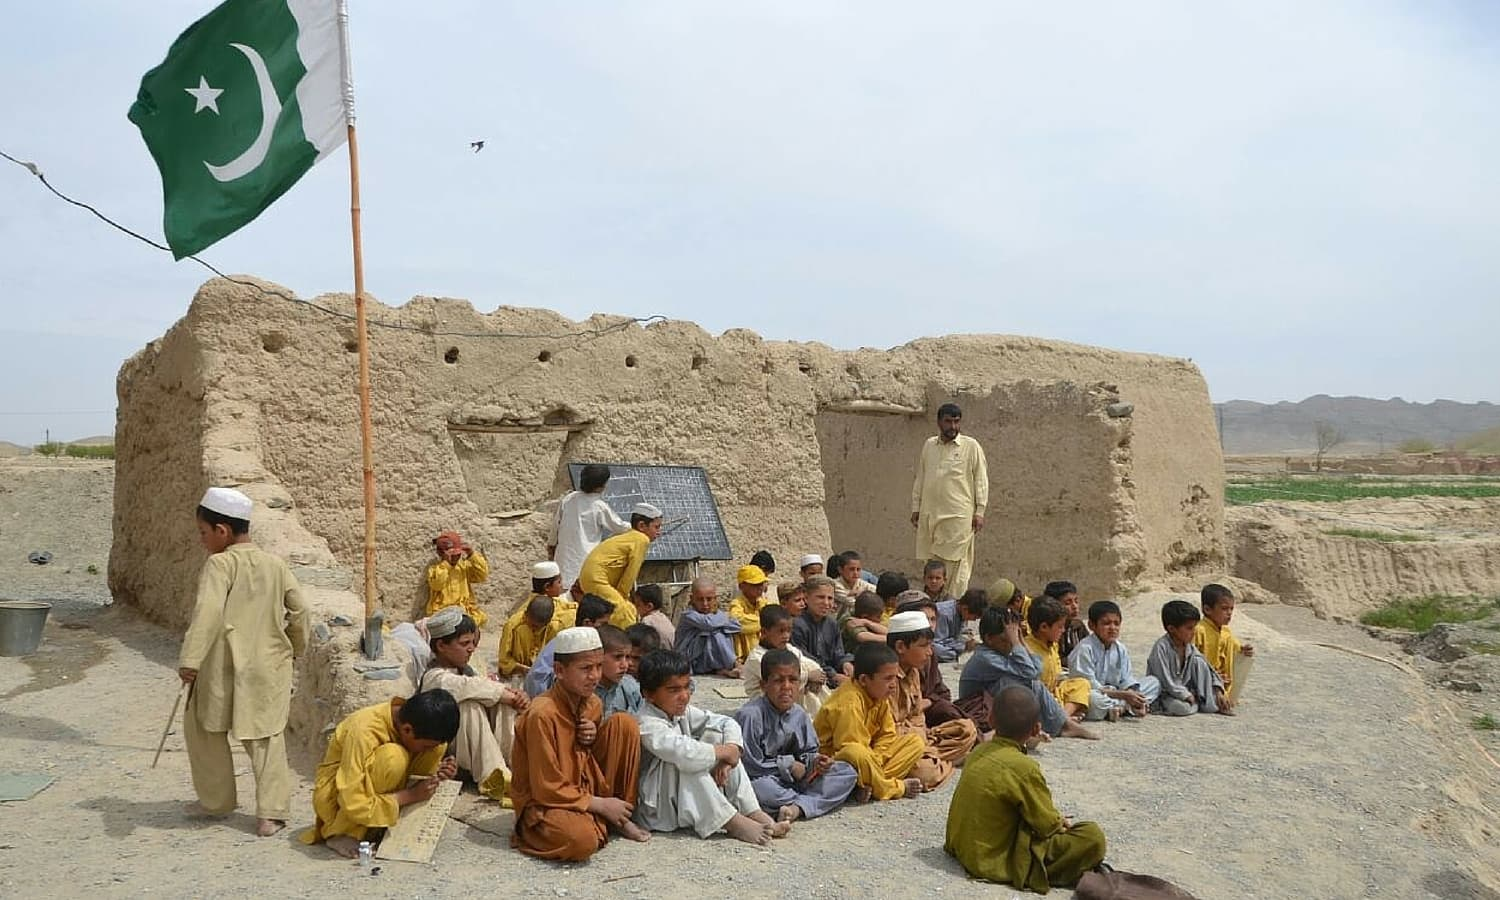 Located almost two kilometres east of the Quetta-Chaman national highway, Machka Killa Abdullah primary school was established in 2003 during Pervez Musharraf's regime for the children of the poor neighbourhood. -Photo by Asmatullah Khan